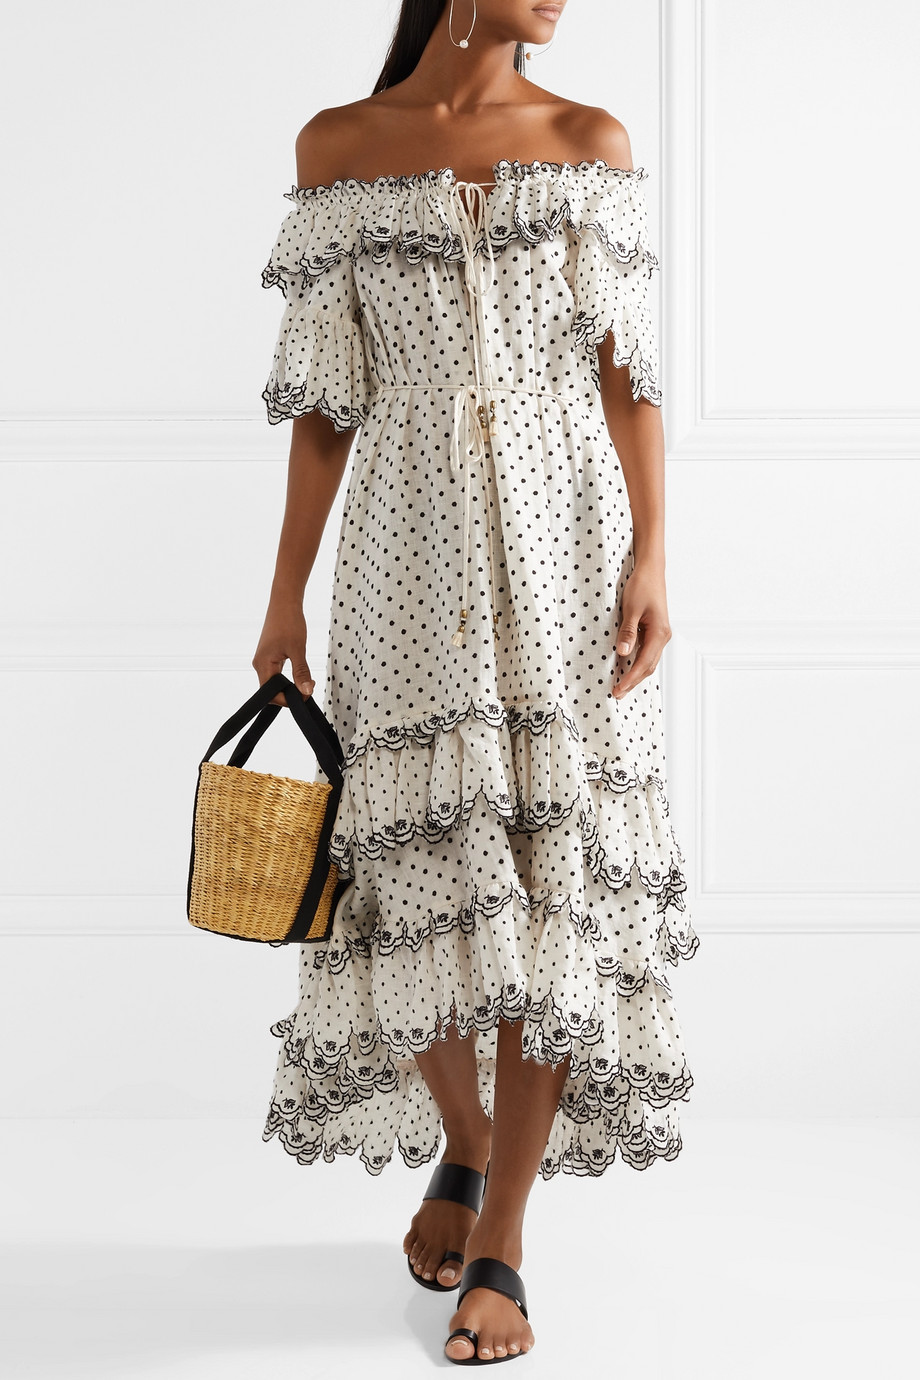 Beachy Off The Shoulder Zimmermann Dress.jpg